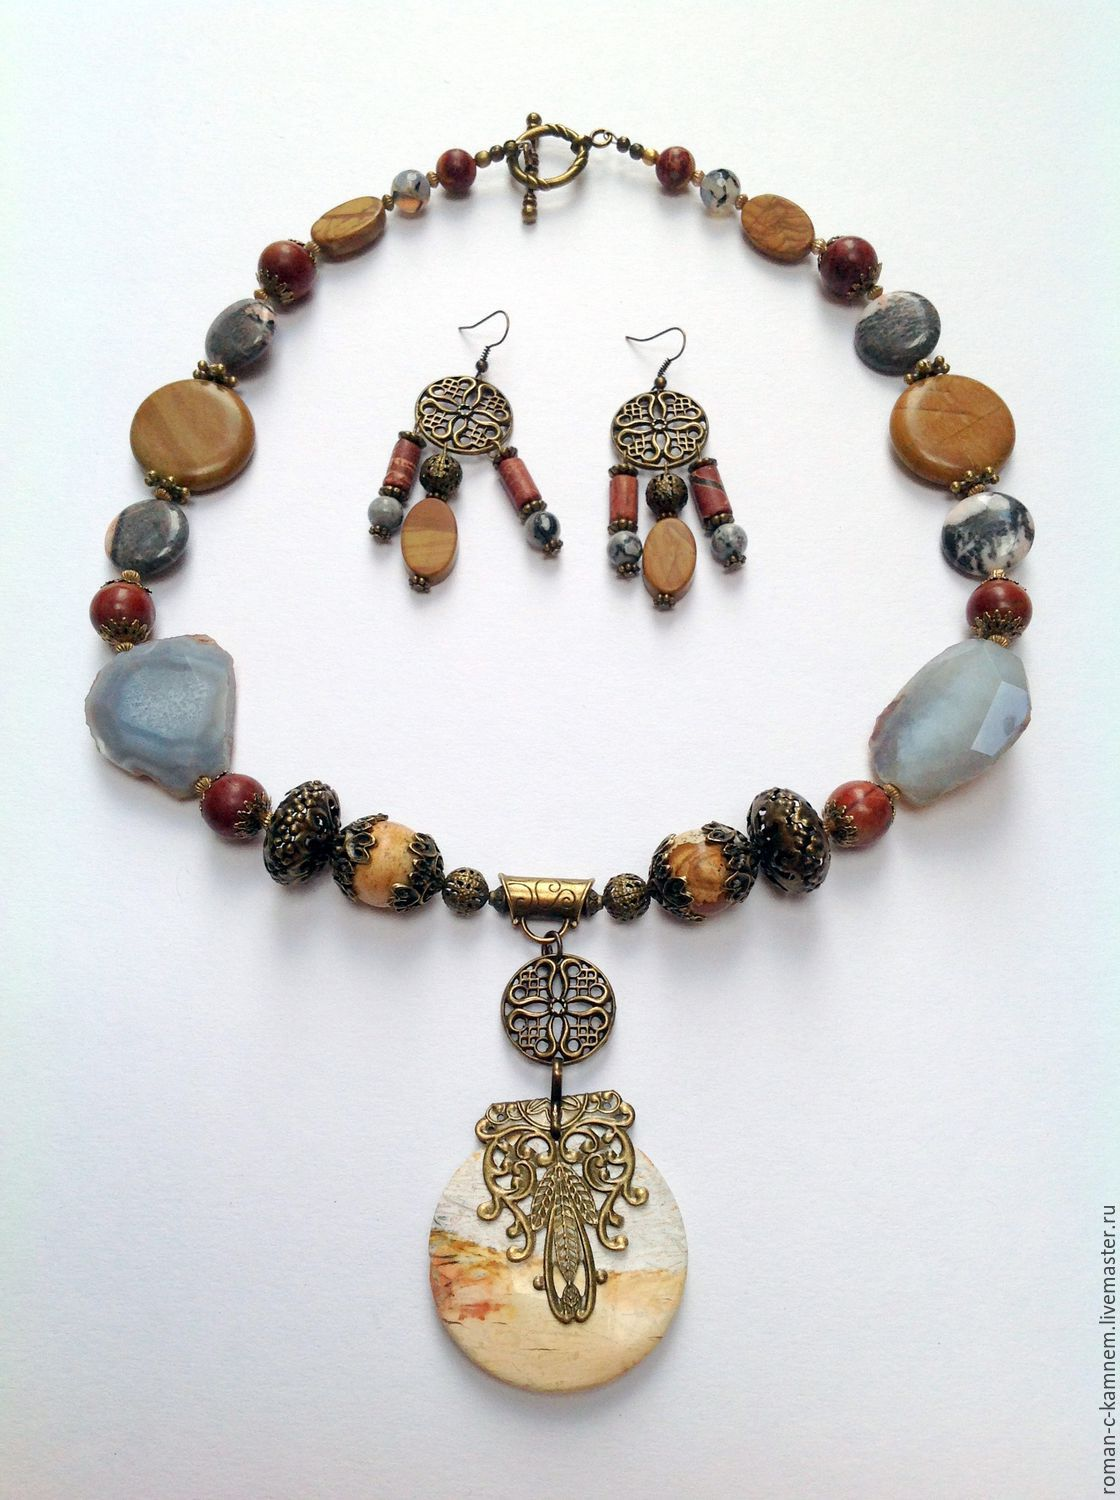 Necklace made of natural stones ethnic design boyar. The author's work. Handmade ethnic necklace.